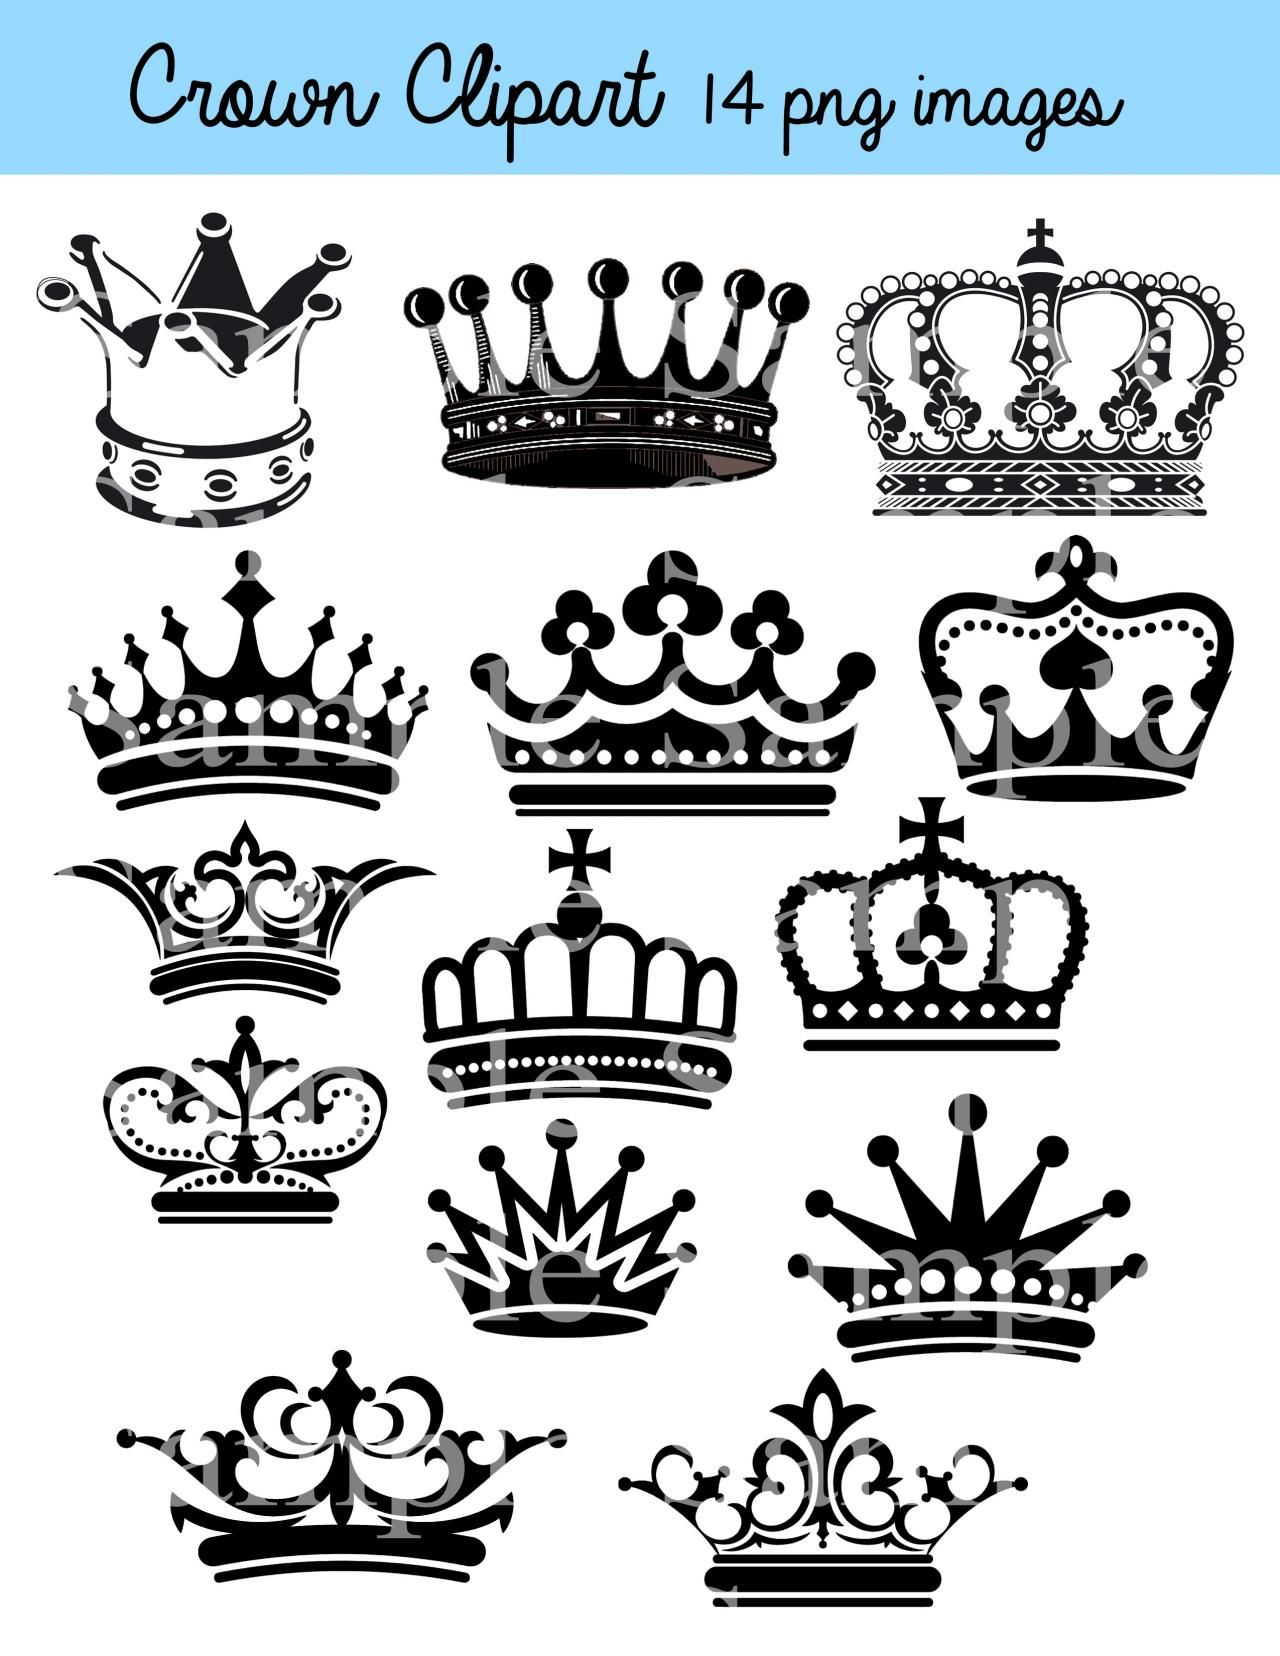 Crown Clipart Clip Art, Crown Silho | Clip art, Princess crowns ...